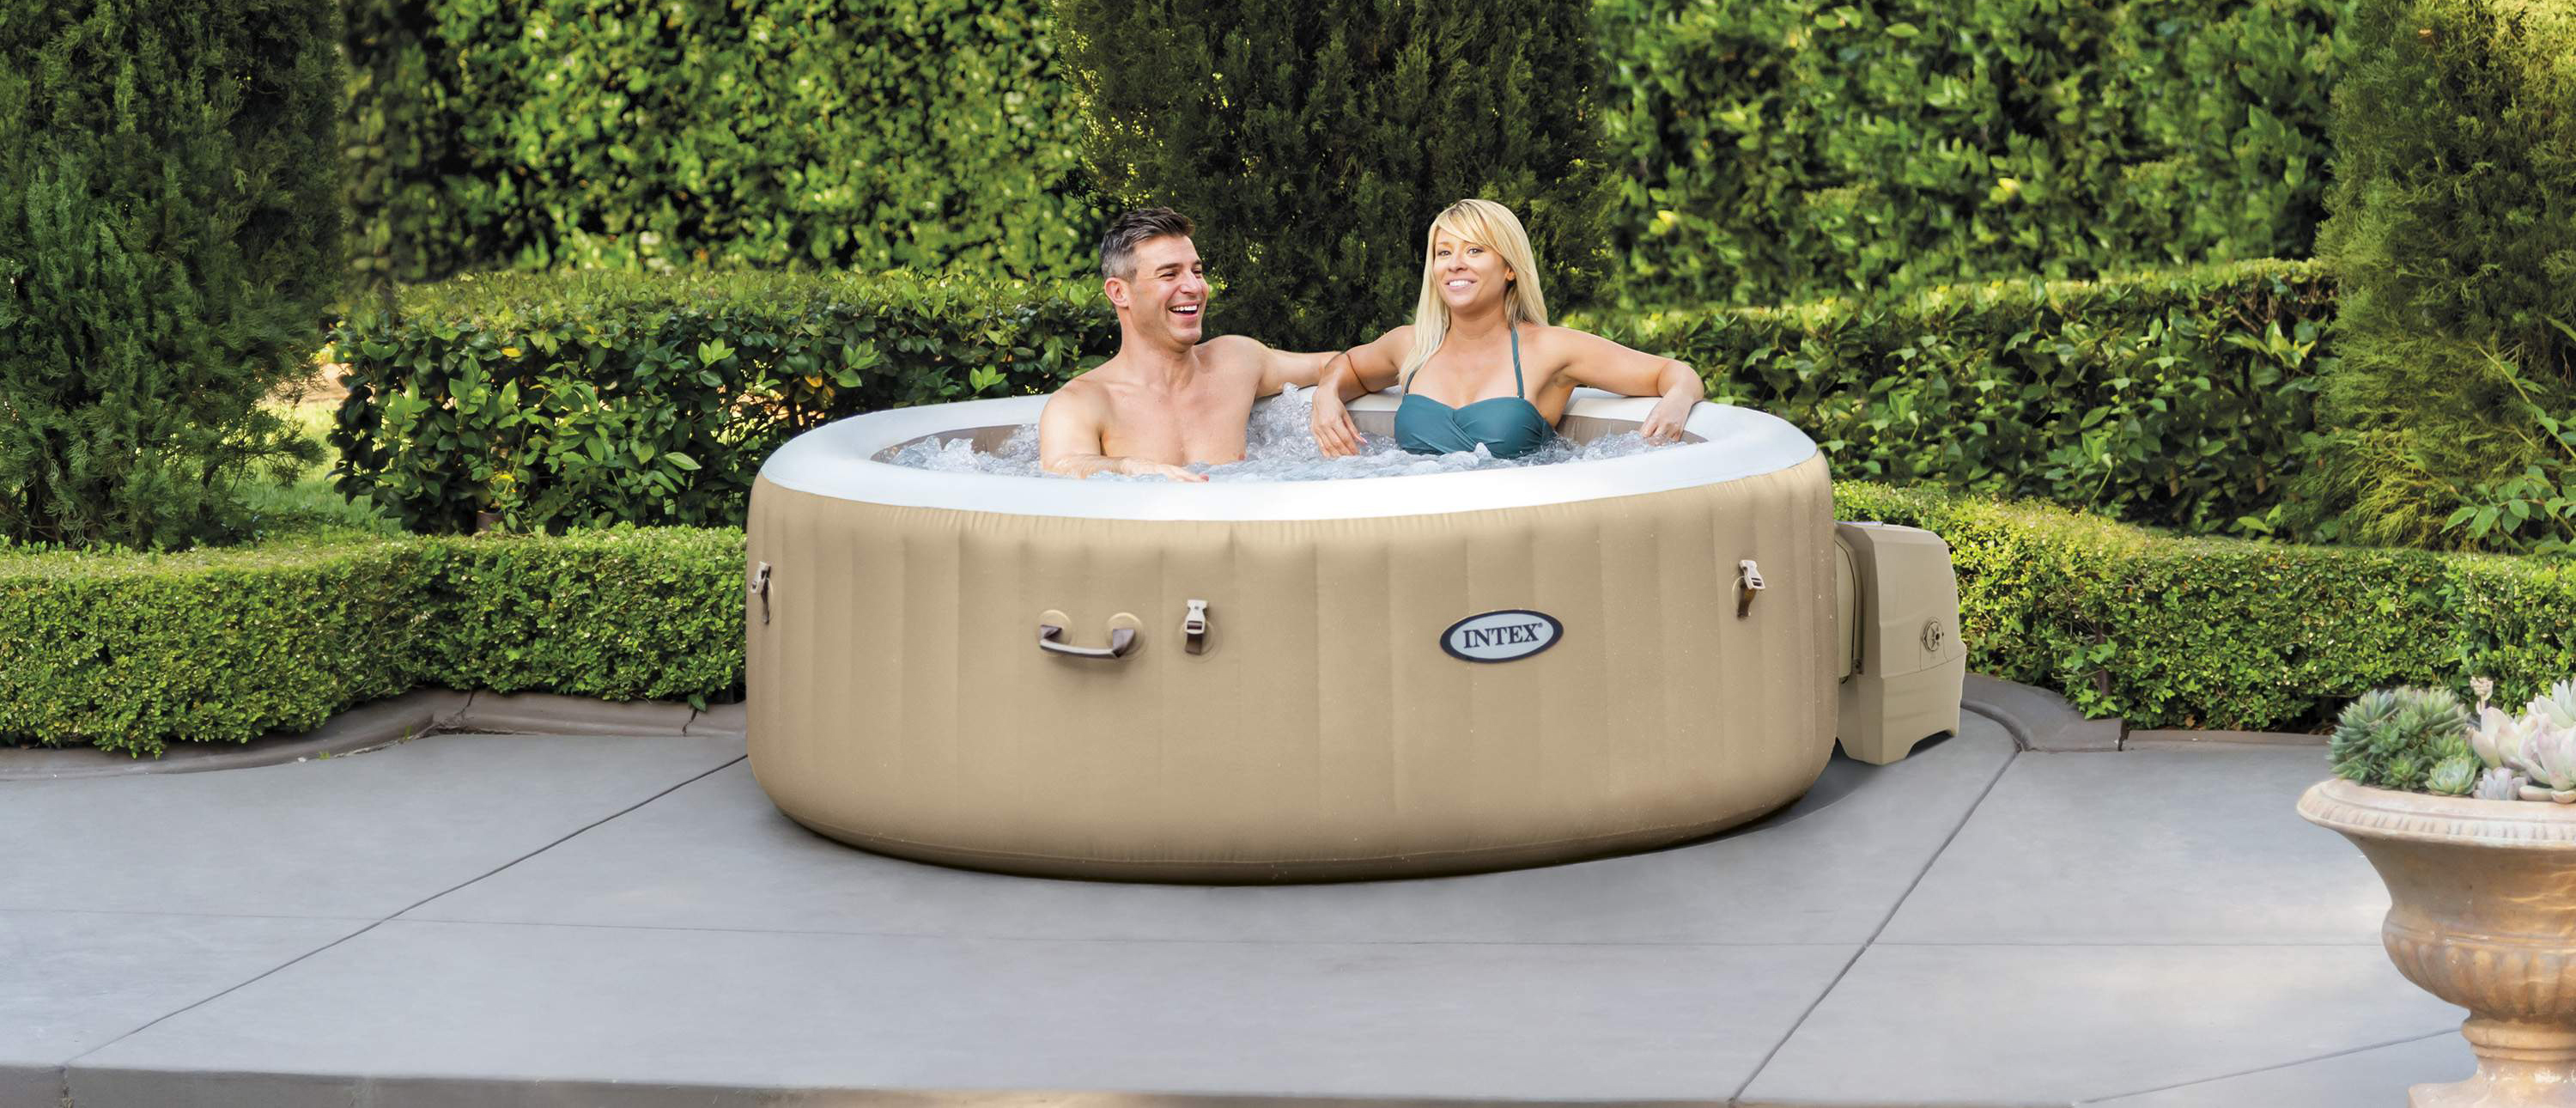 Spa intex purespa Bubble